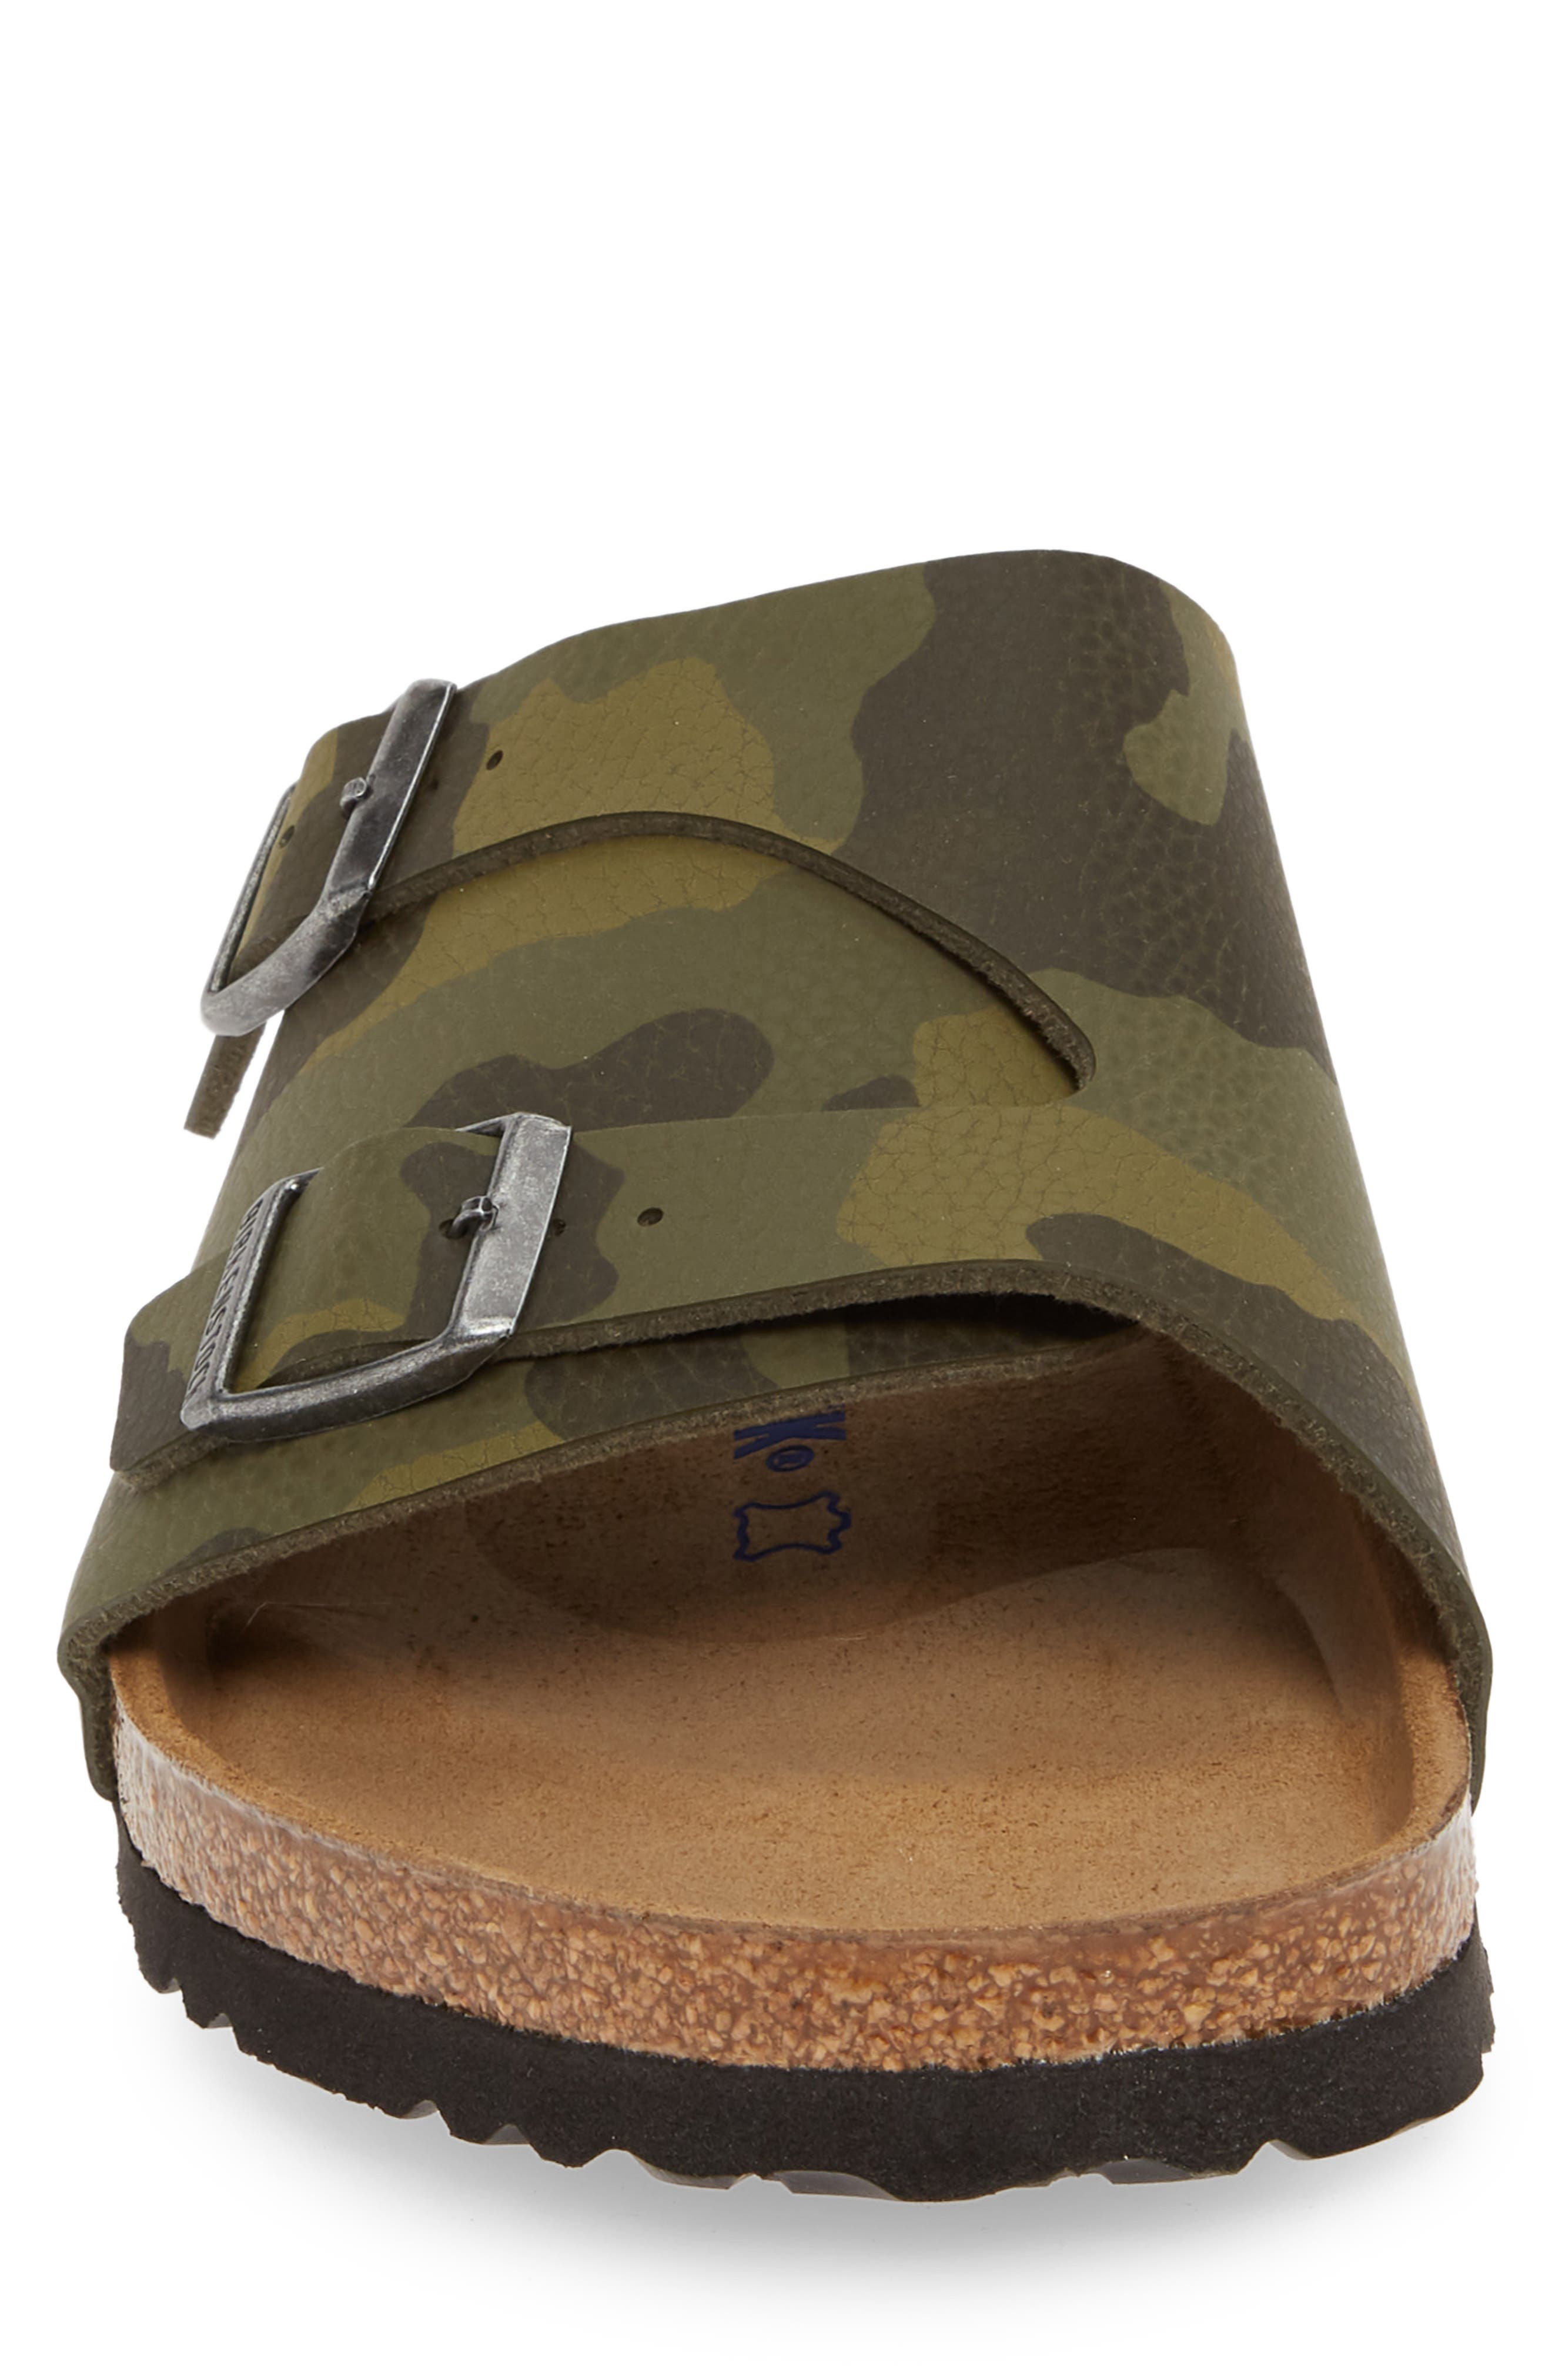 BIRKENSTOCK, Zurich Slide Sandal, Alternate thumbnail 4, color, DESERT CAMO GREEN